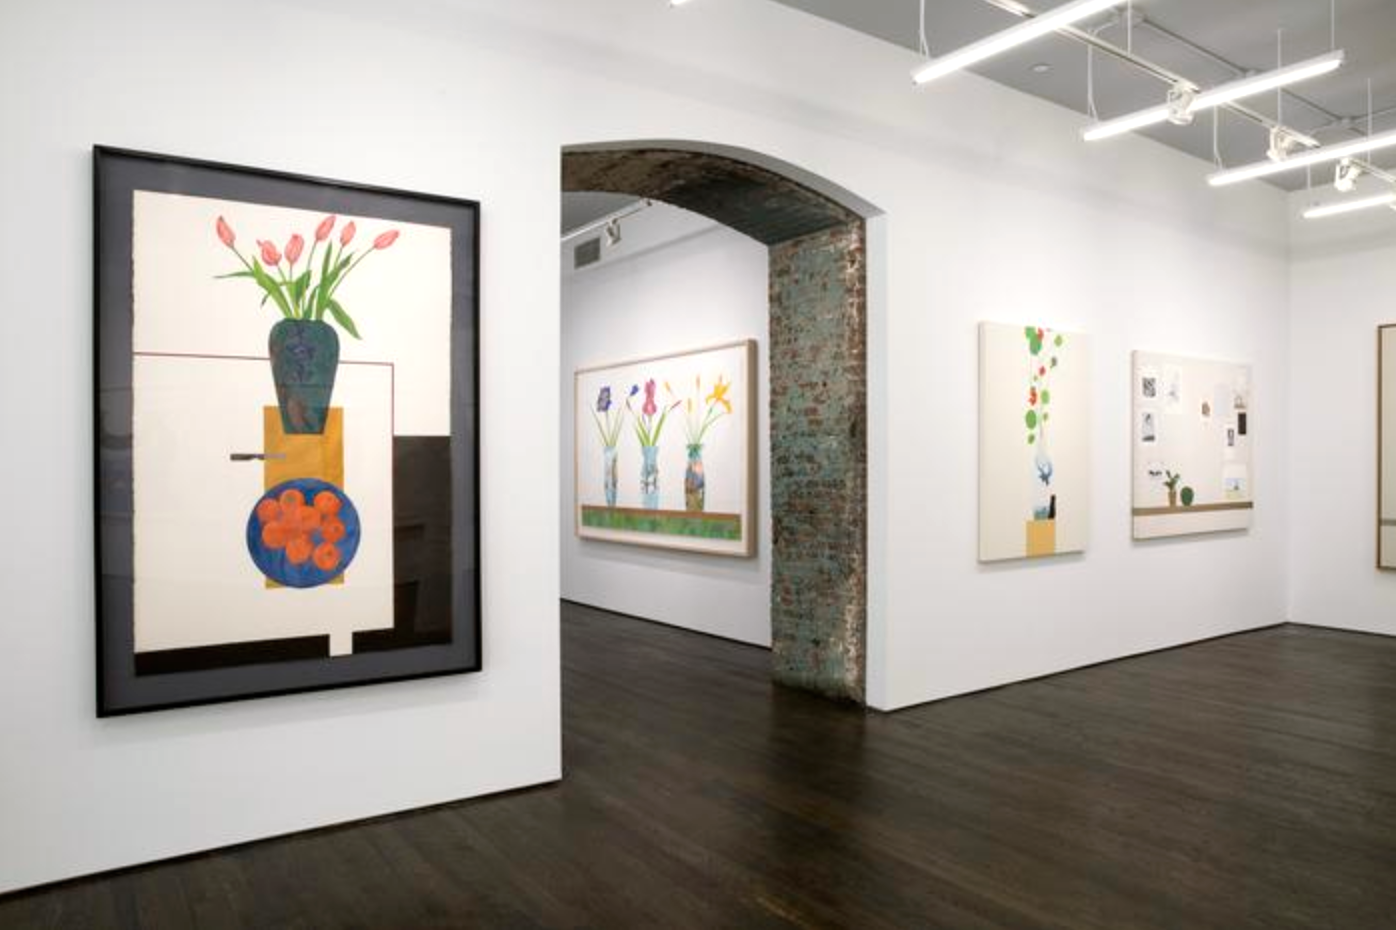 Installation view: Ed Baynard at White Columns, image courtesy of the gallery.